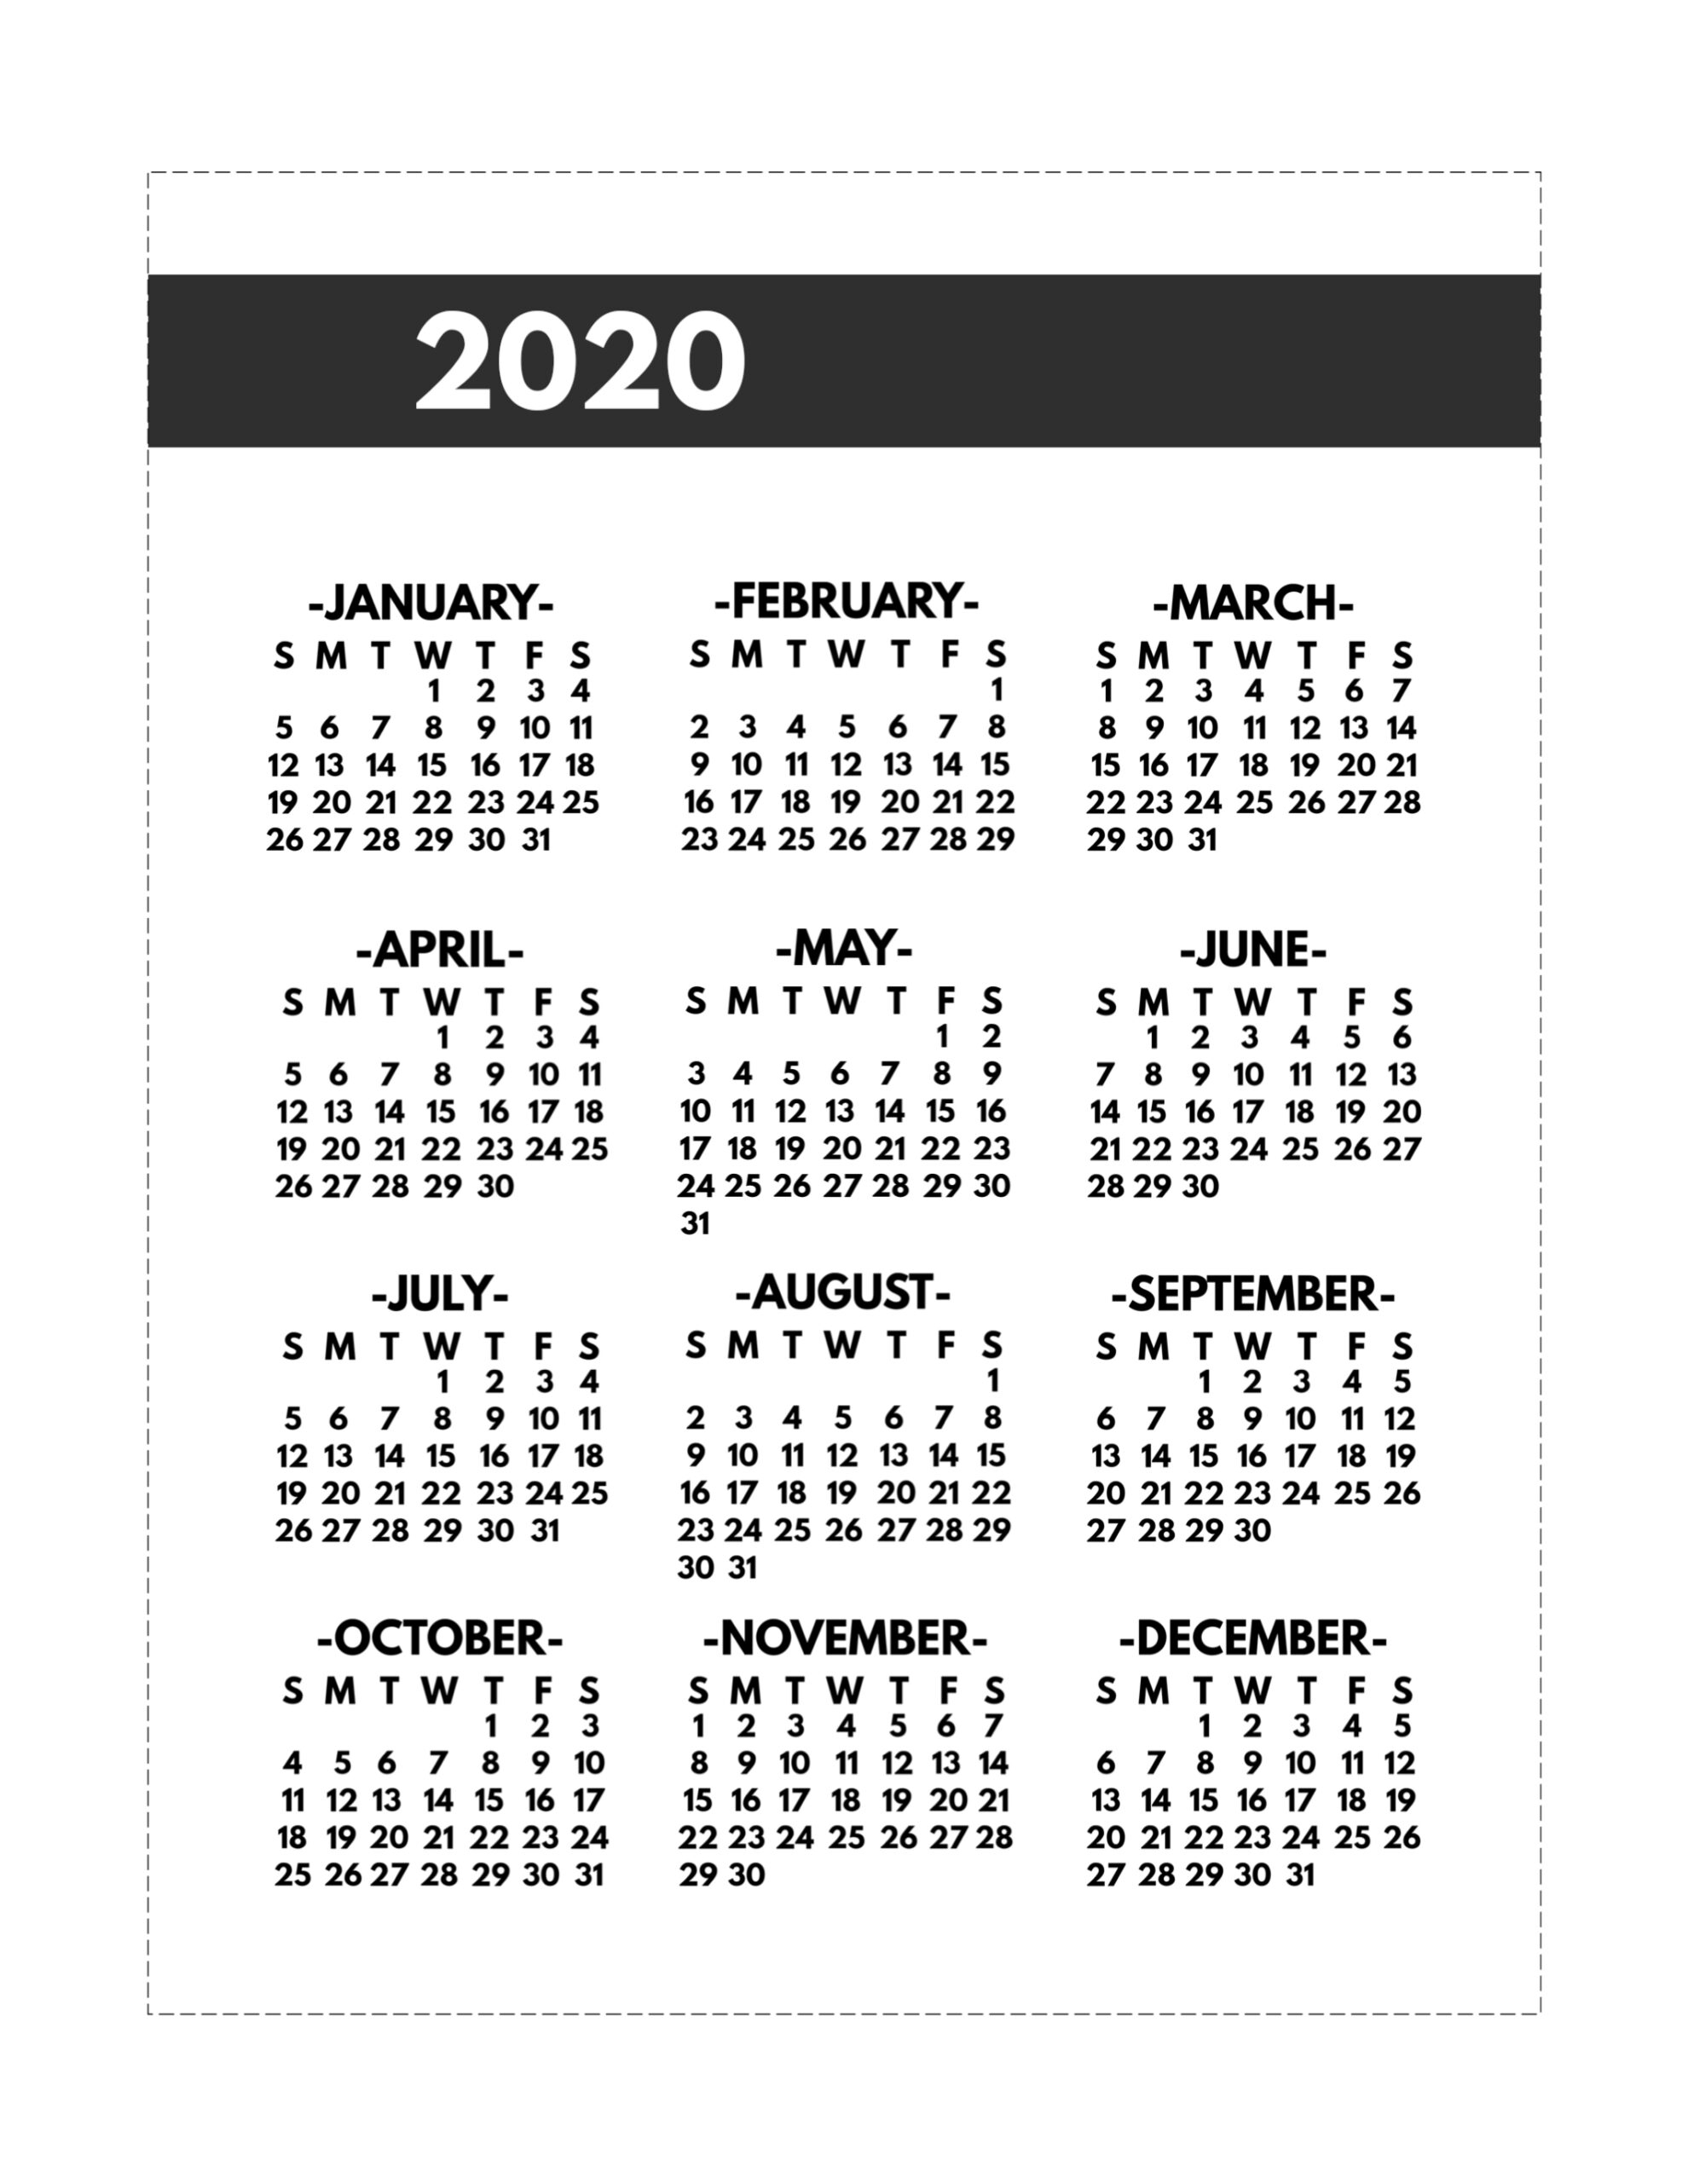 2020 Calendar Year At A Glance Printable | Monthly Printable inside 2020 At A Glance Calendar Printable